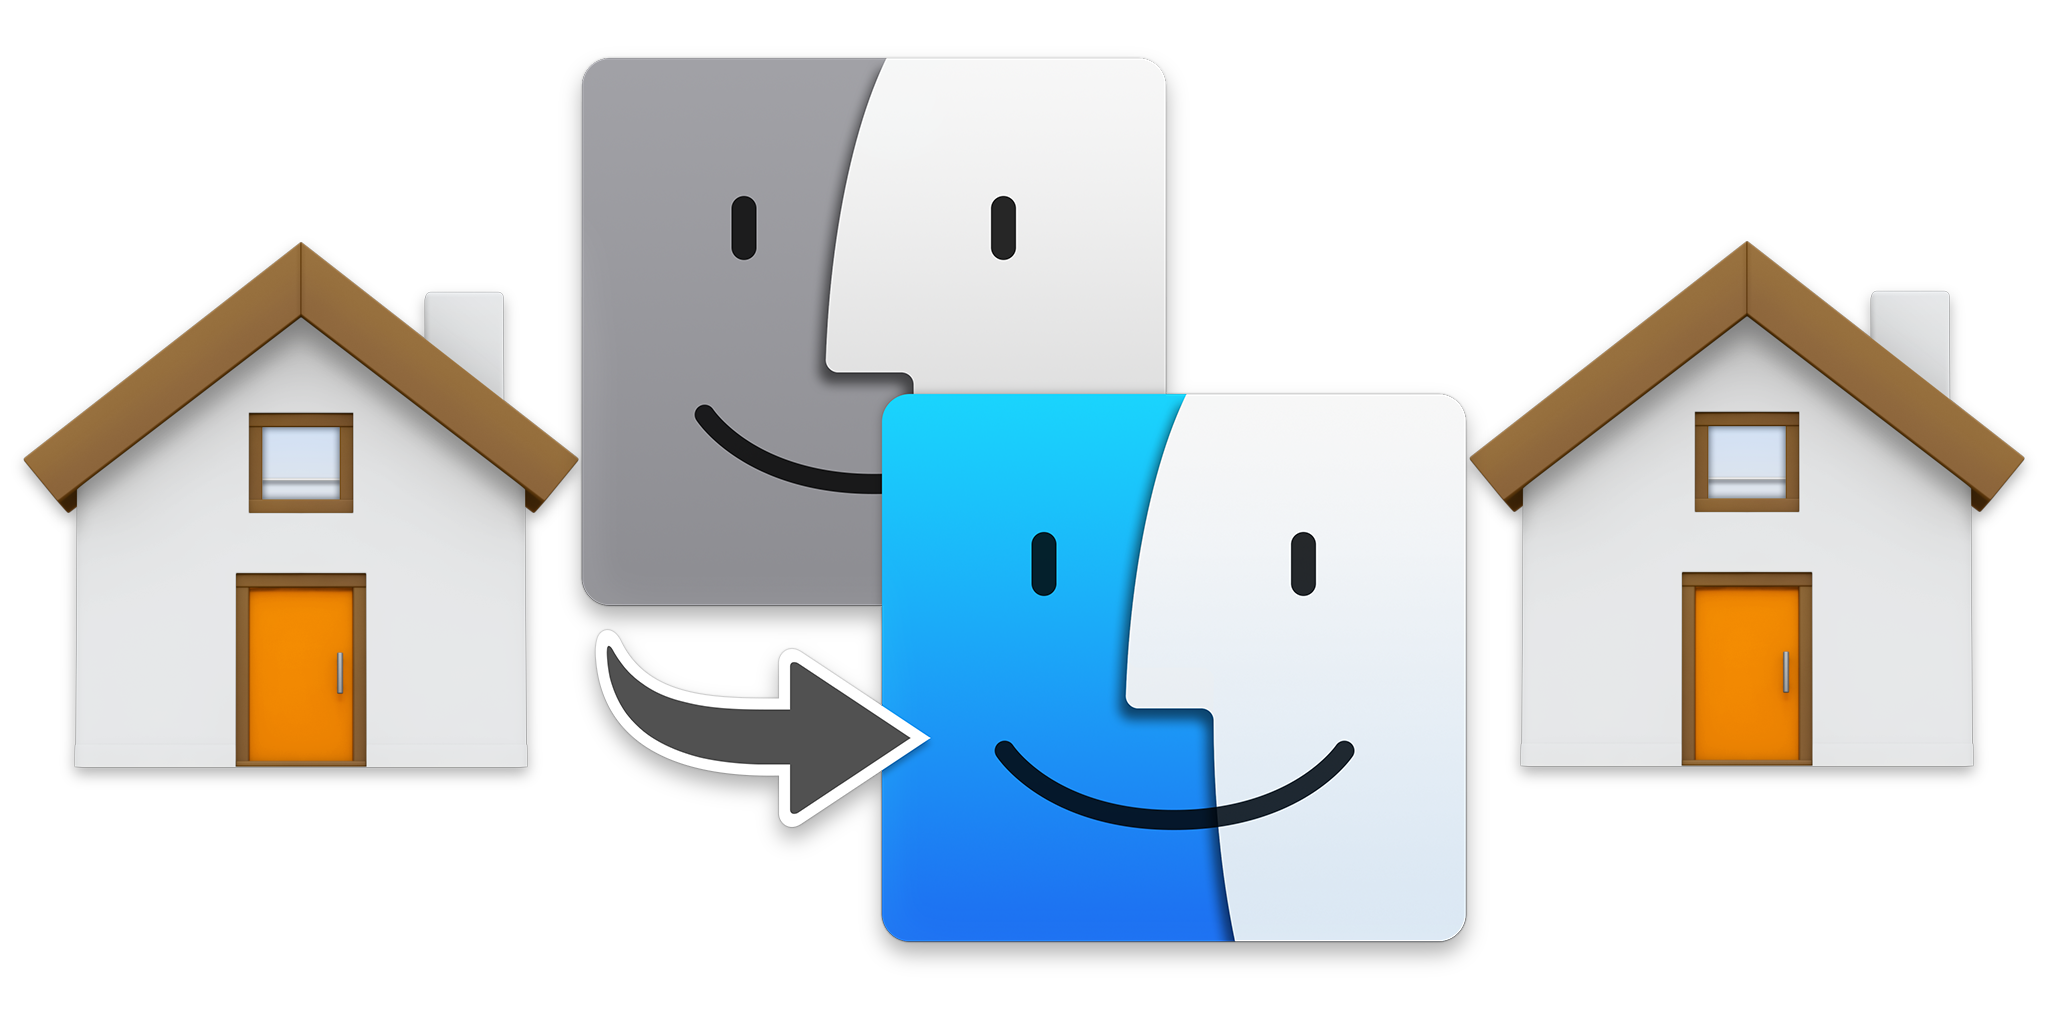 How to move your Mac user folder to a separate drive from the boot.